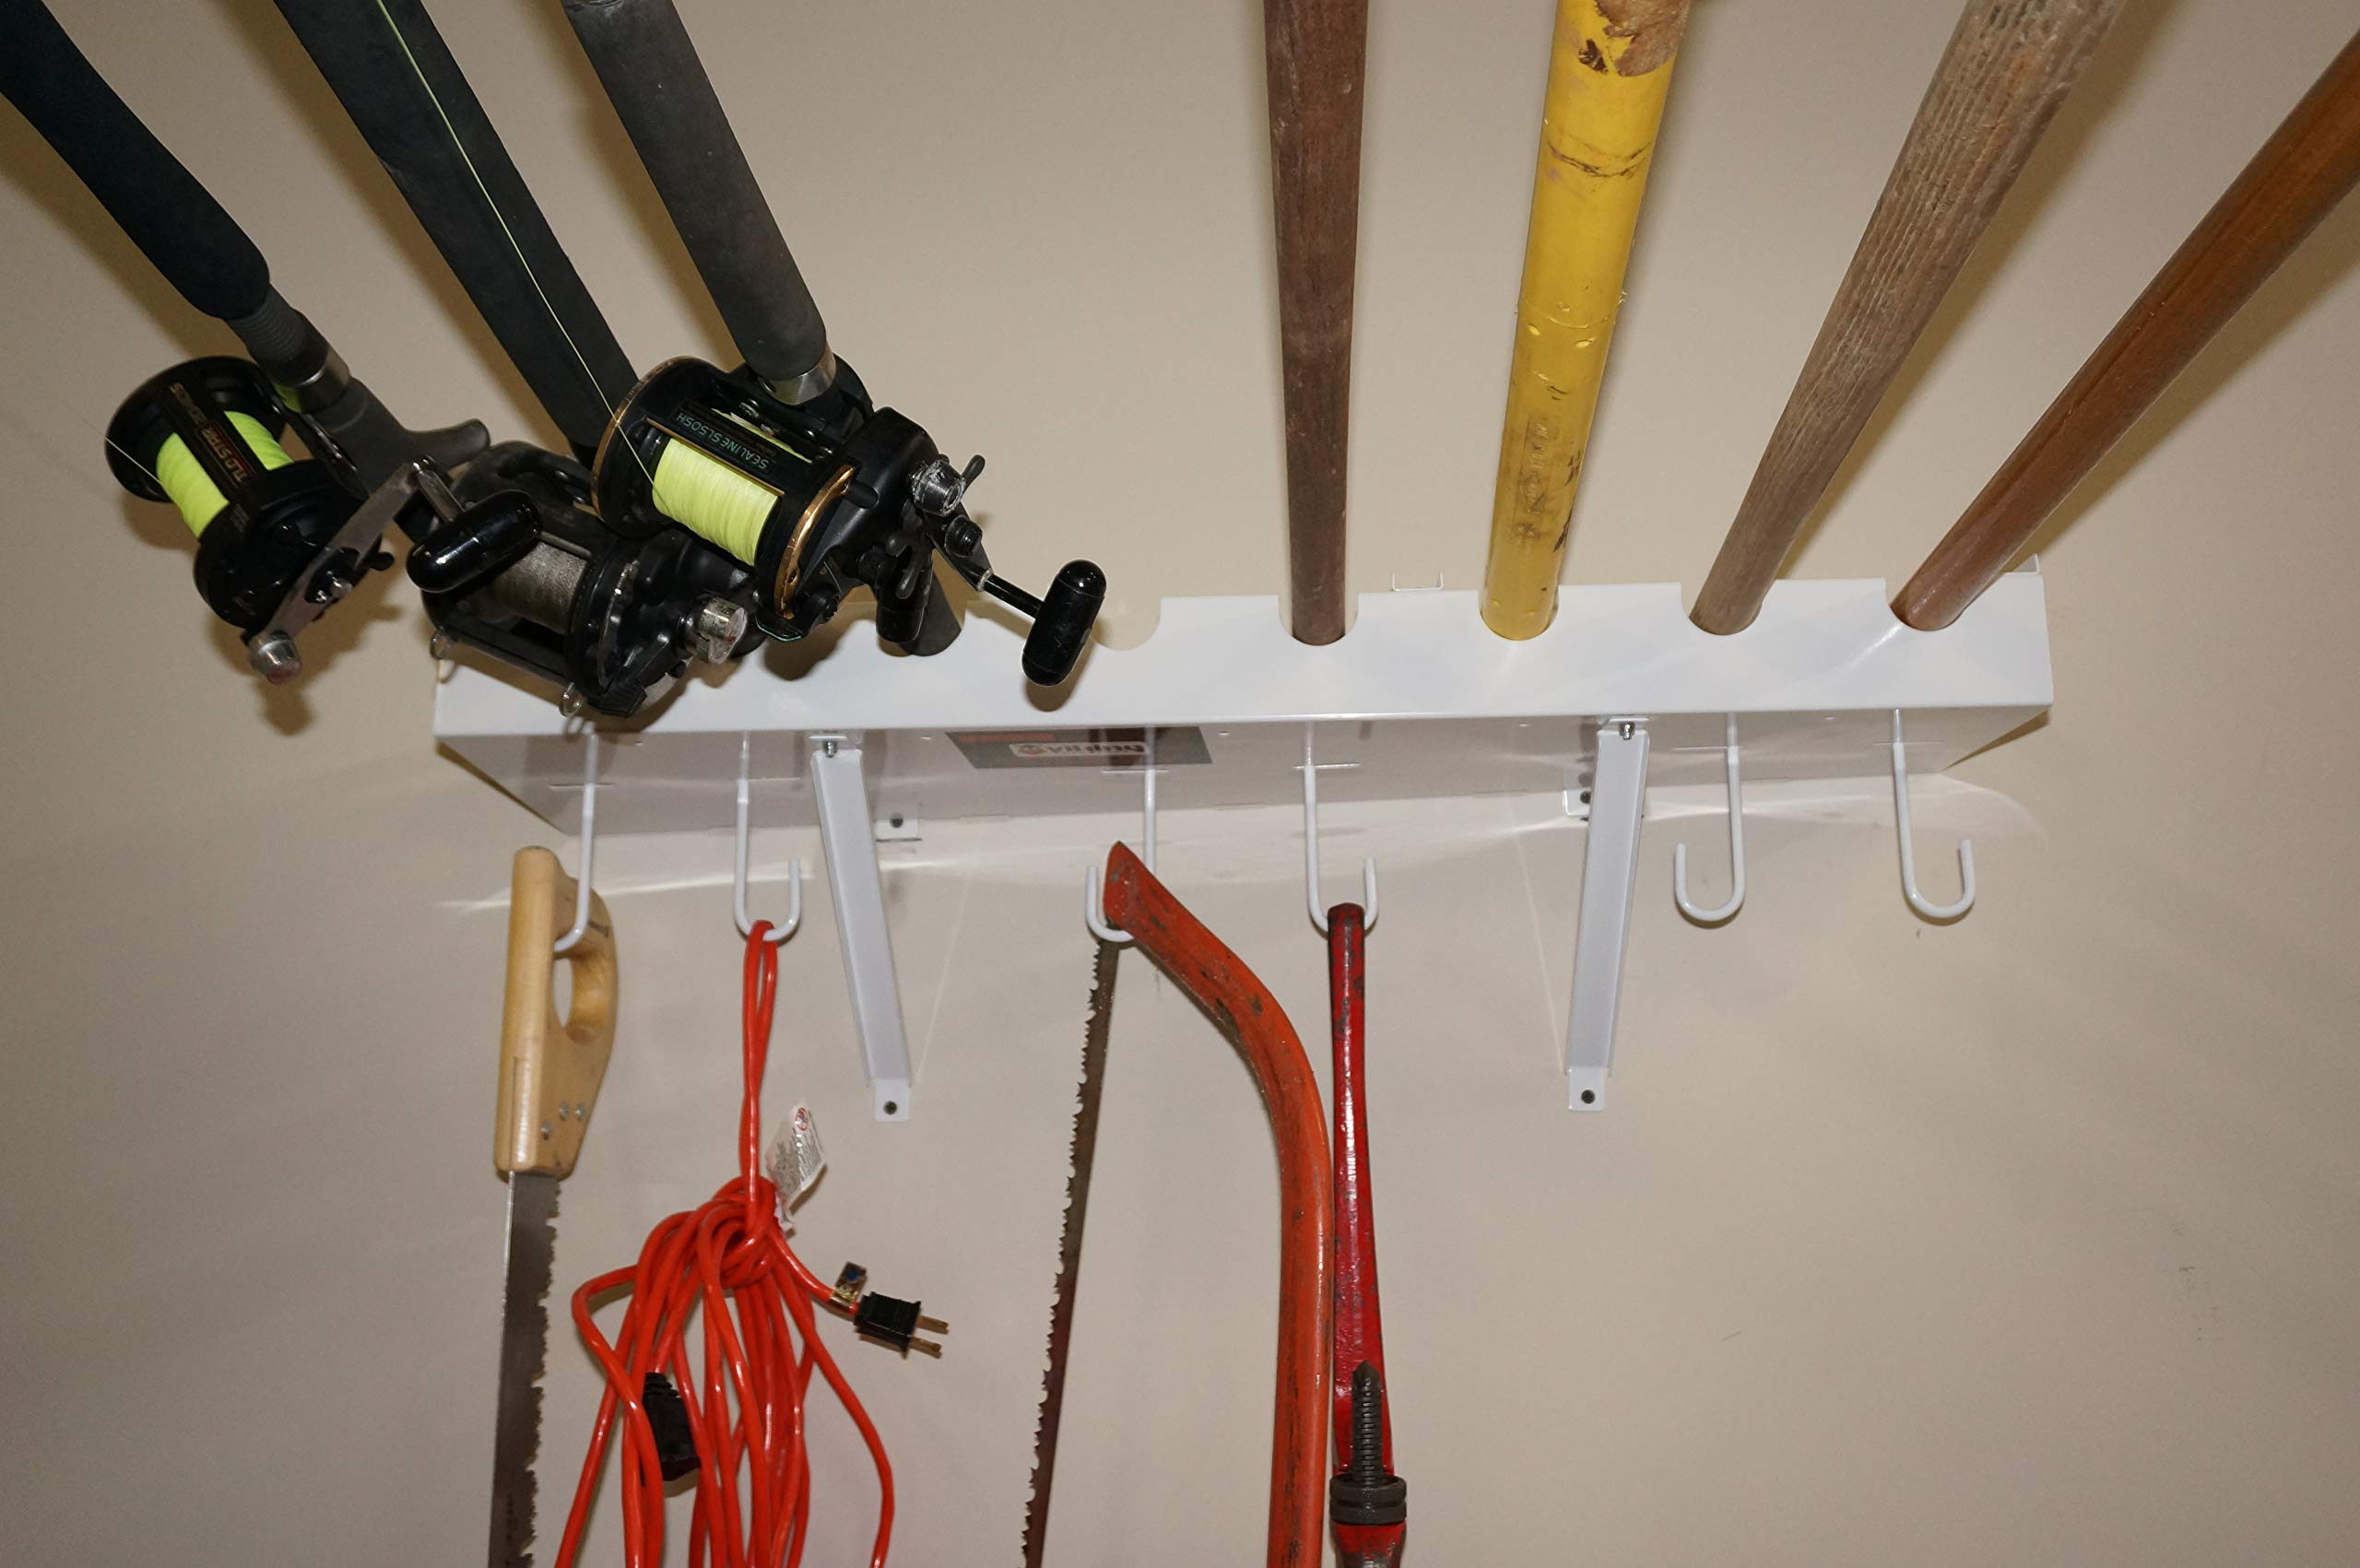 Viking Overhead Wall Mount Tool-Fishing Rod Holder by Viking Solutions (Image #3)